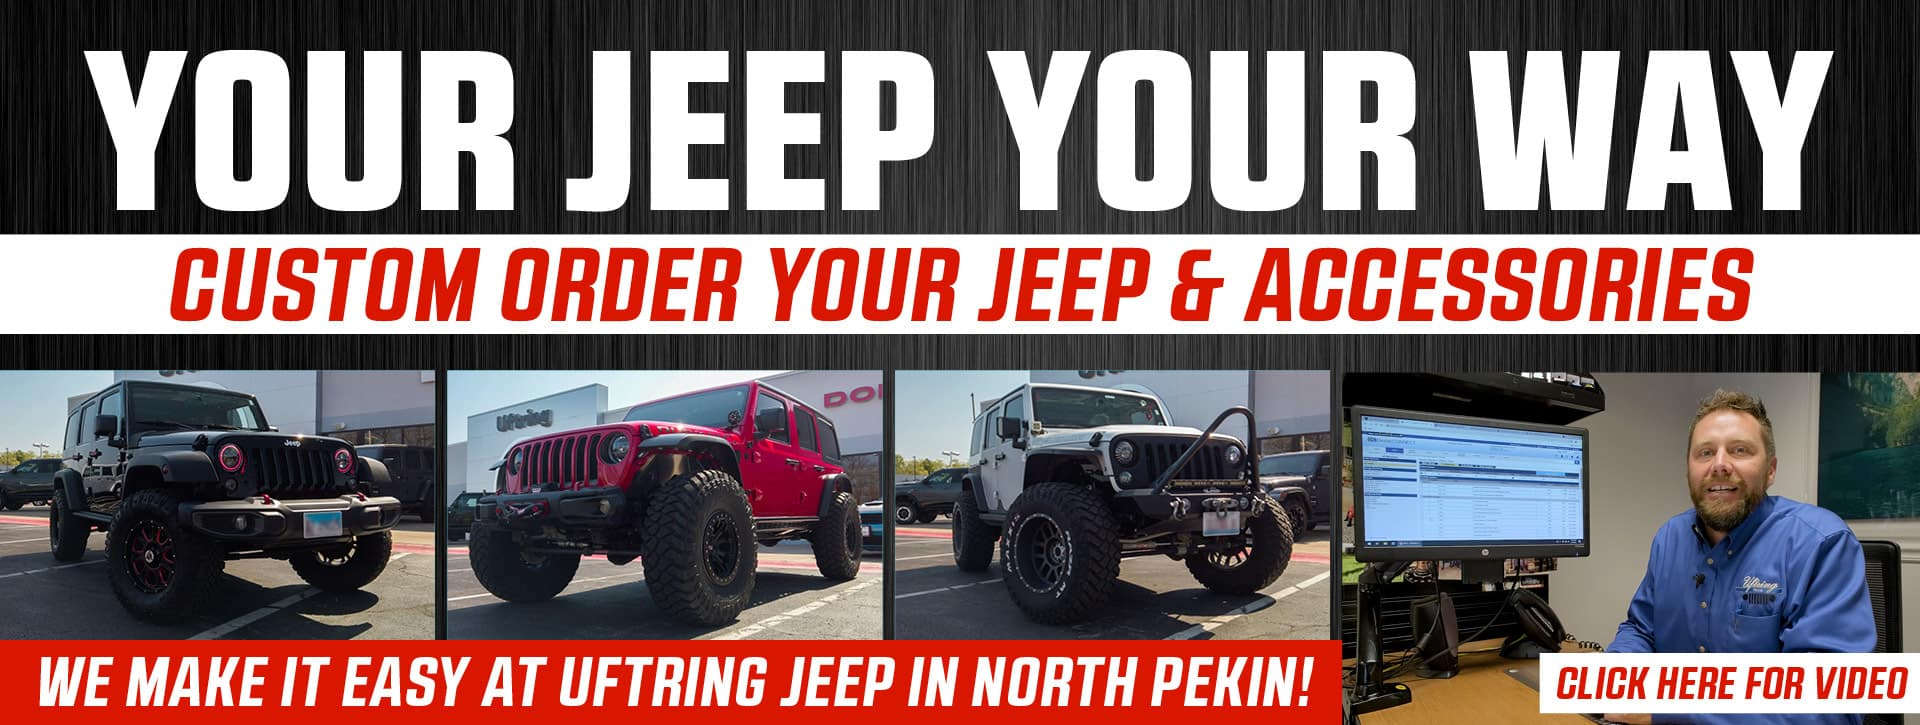 UP Web Banner JEEP 9.3.21